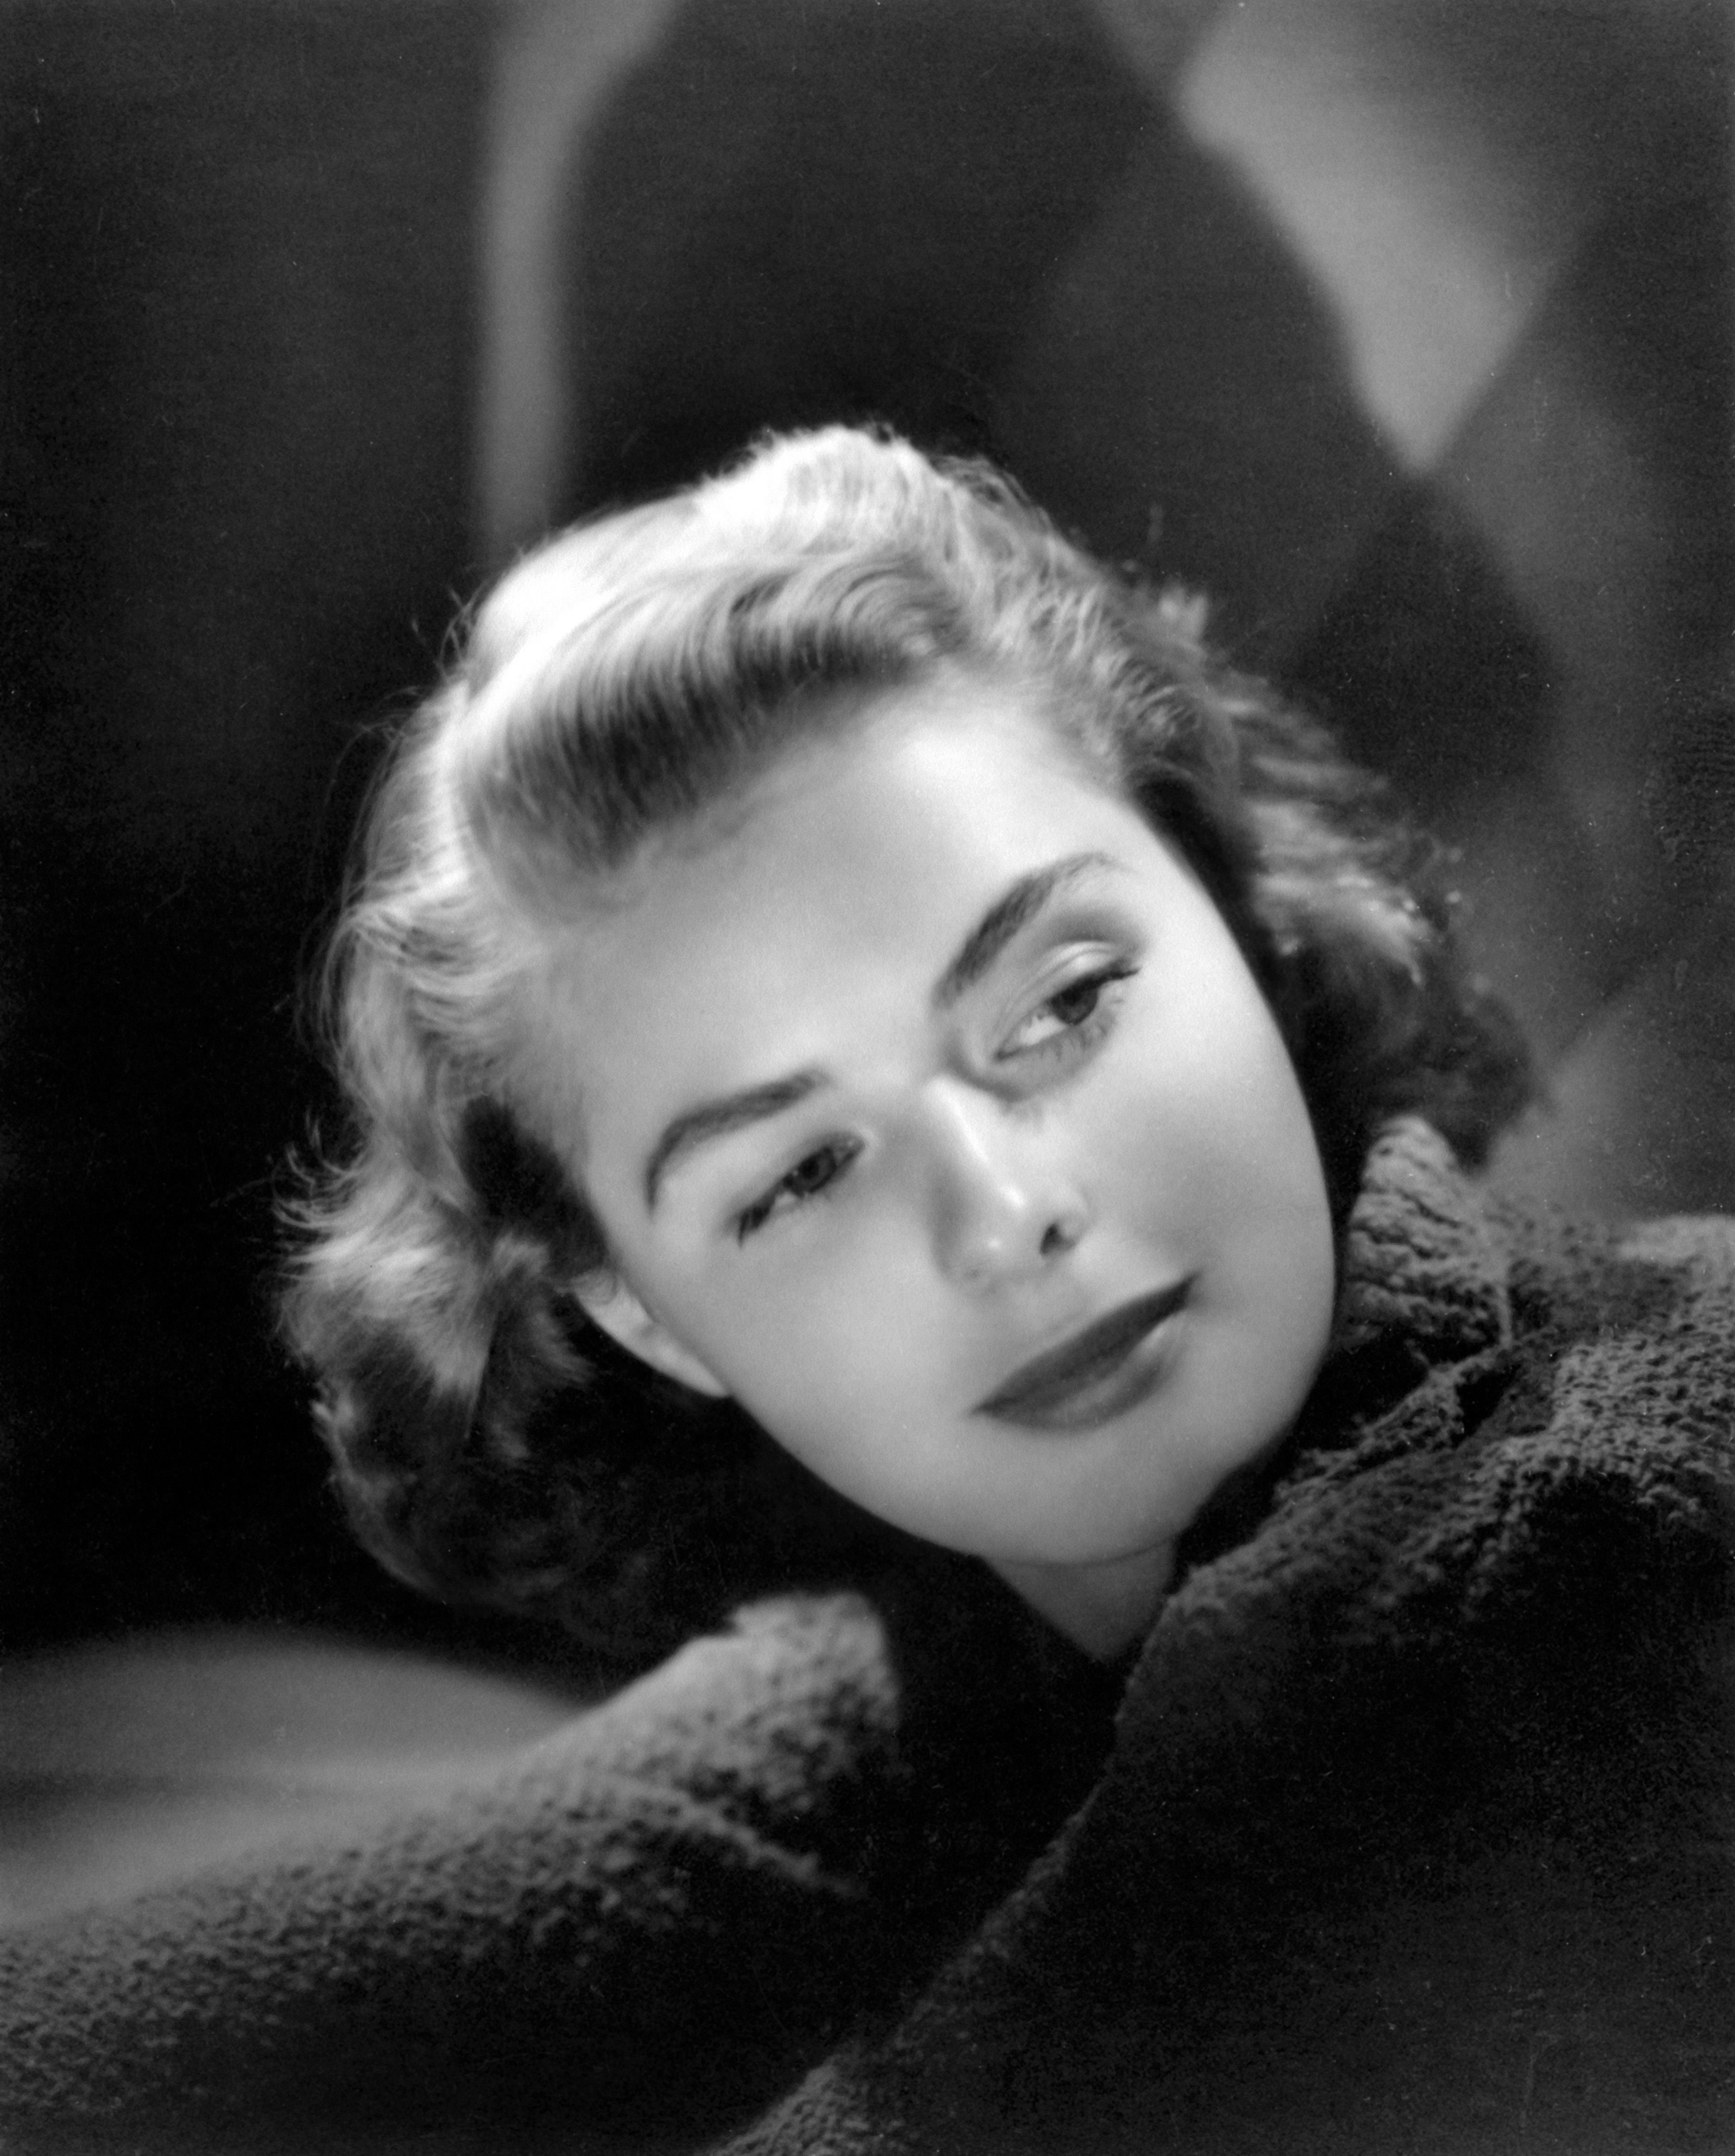 Ingrid Bergman photographed by Laszlo Willinger for a studio portrait in 1940 | Source: Getty Images